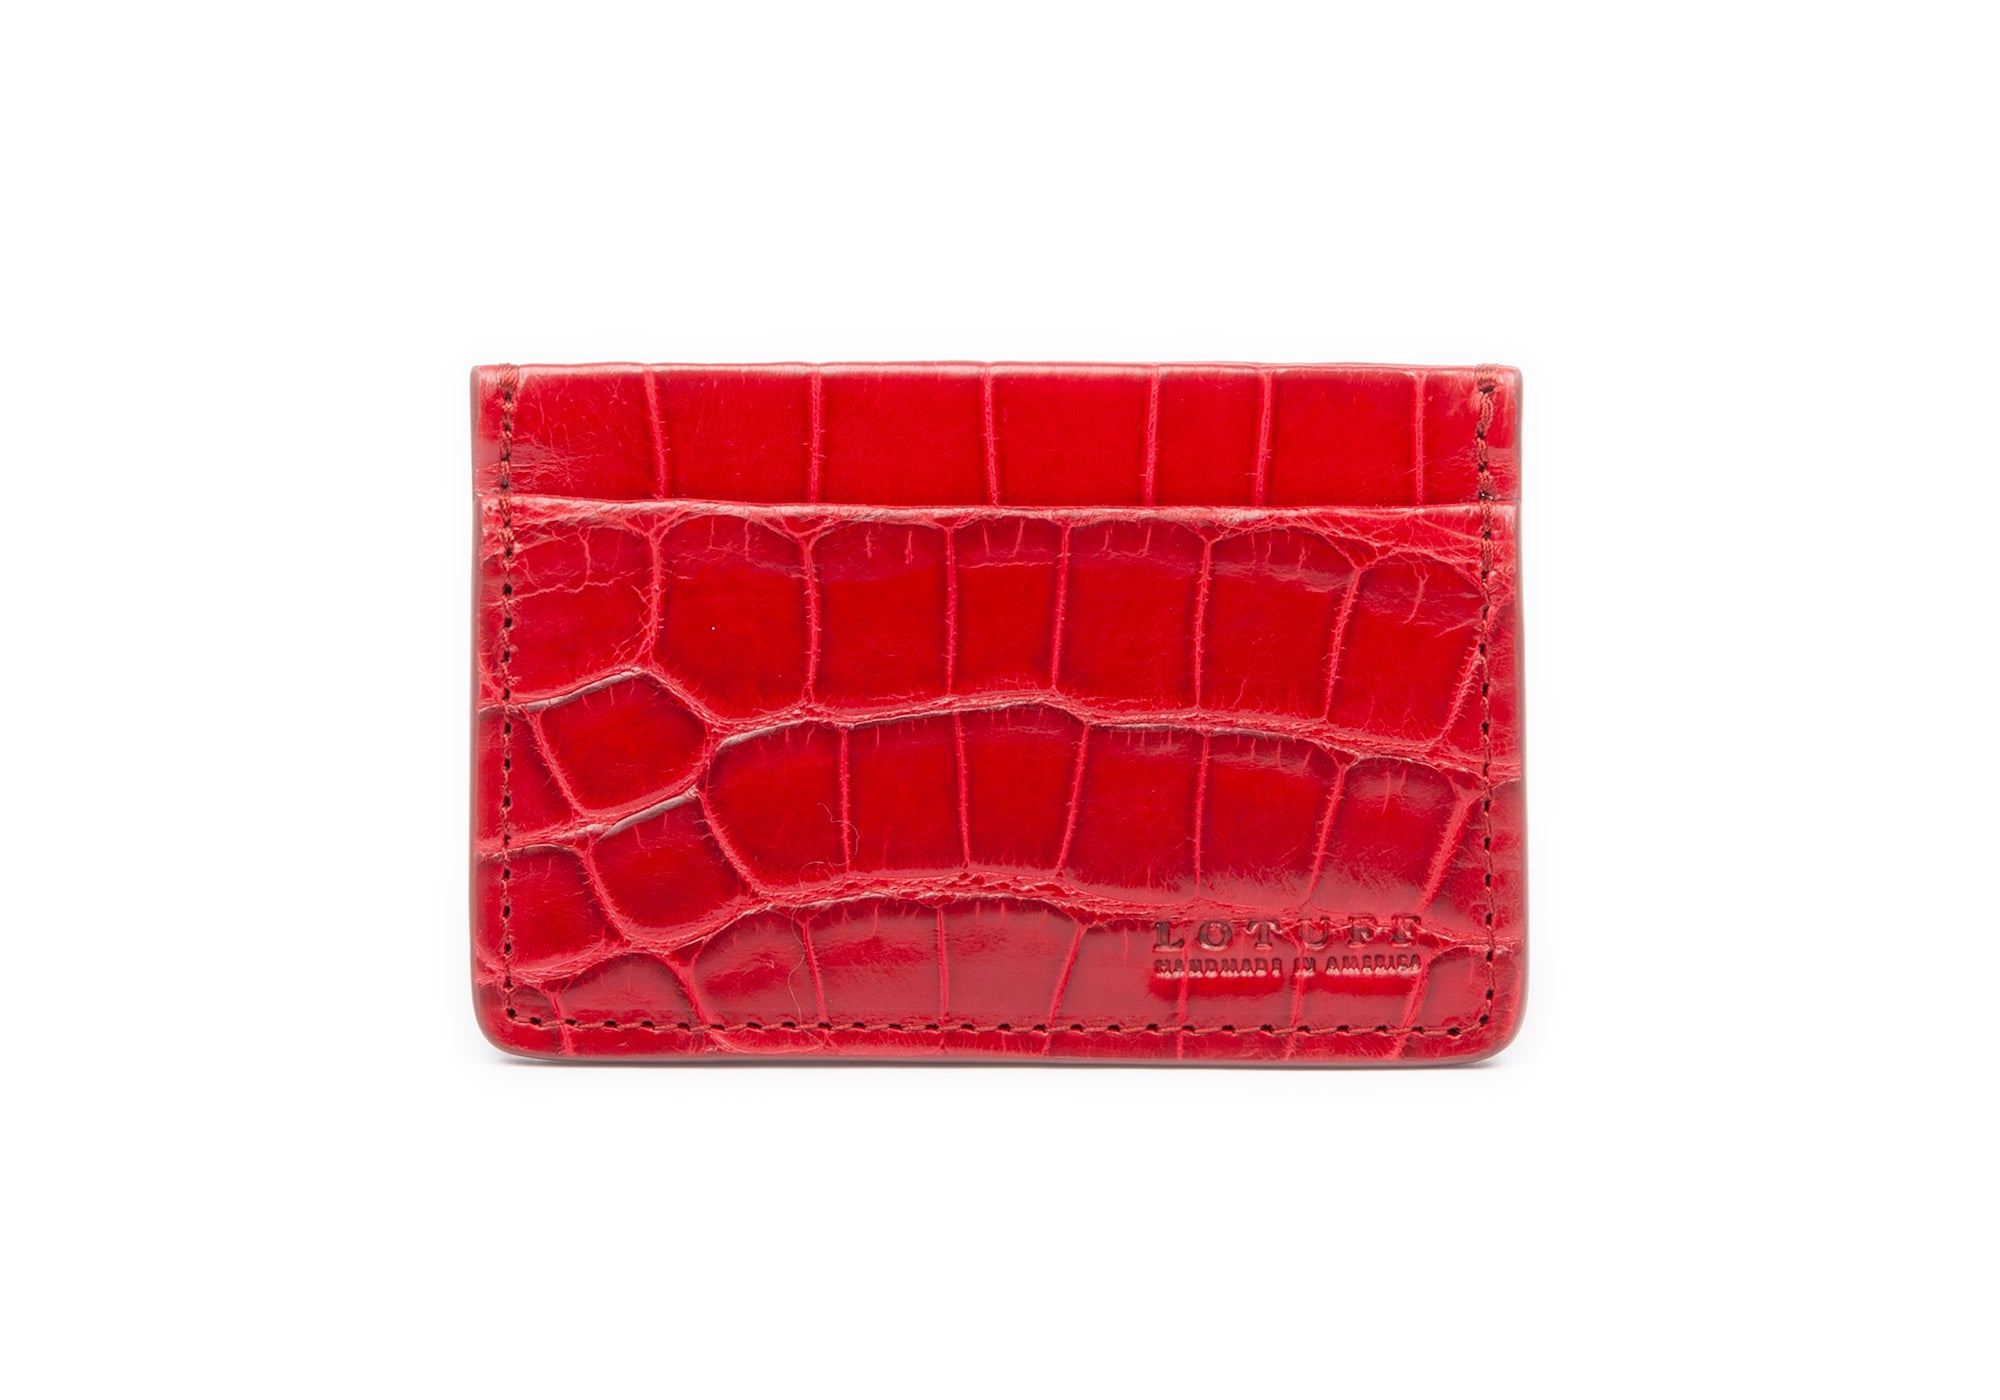 American Alligator Credit Card Wallet Red Alligator